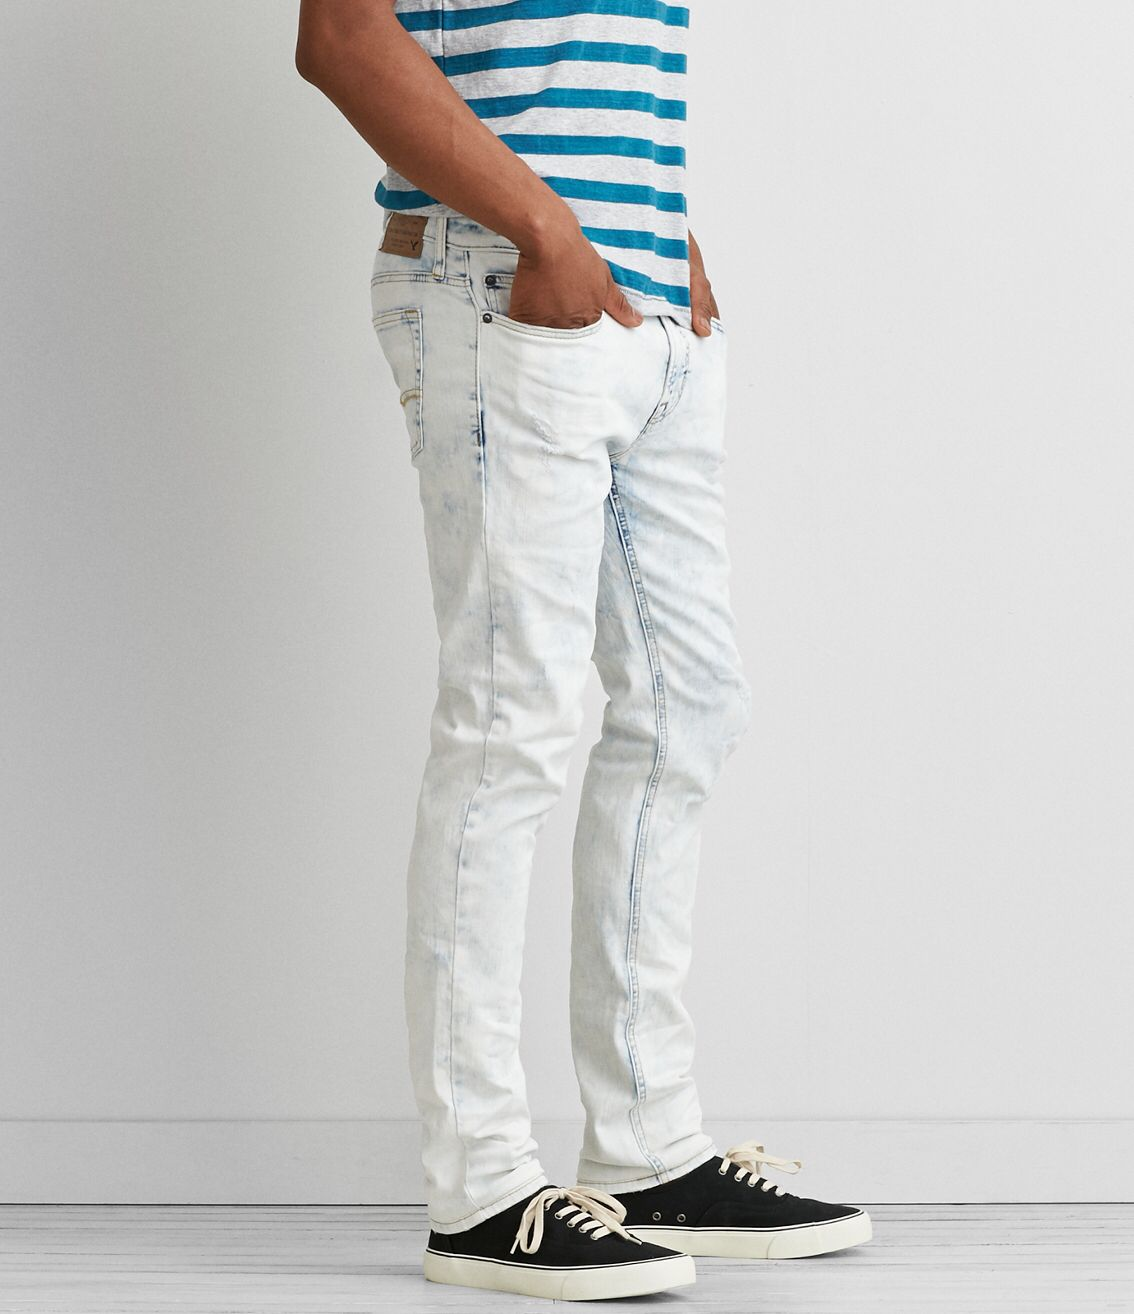 I'm sharing the love with you! Check out the cool stuff I just found at AEO: https://www.ae.com/web/browse/product.jsp?productId=0119_3980_915